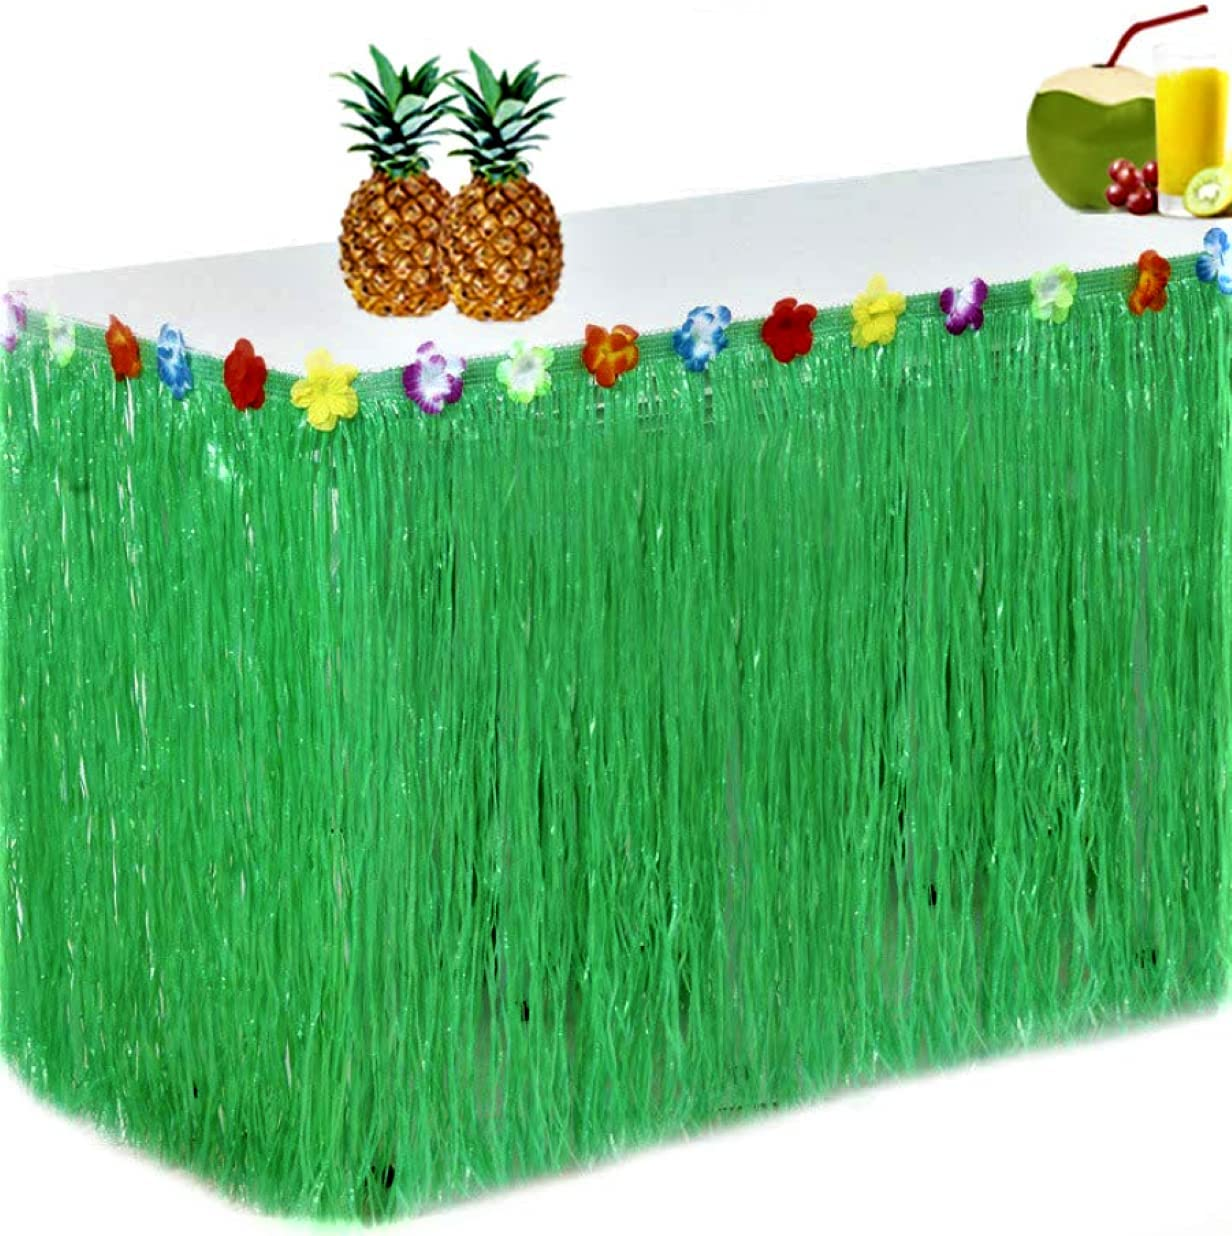 King Luau Green Grass Table Skirt - 9ft x 29in Luau Table Skirt | Raffia Fringe Party Decoration for Tiki Tropical Hawaii or Moana Themed Birthday, Graduation or Costume Party | Hawaiian Table Skirt